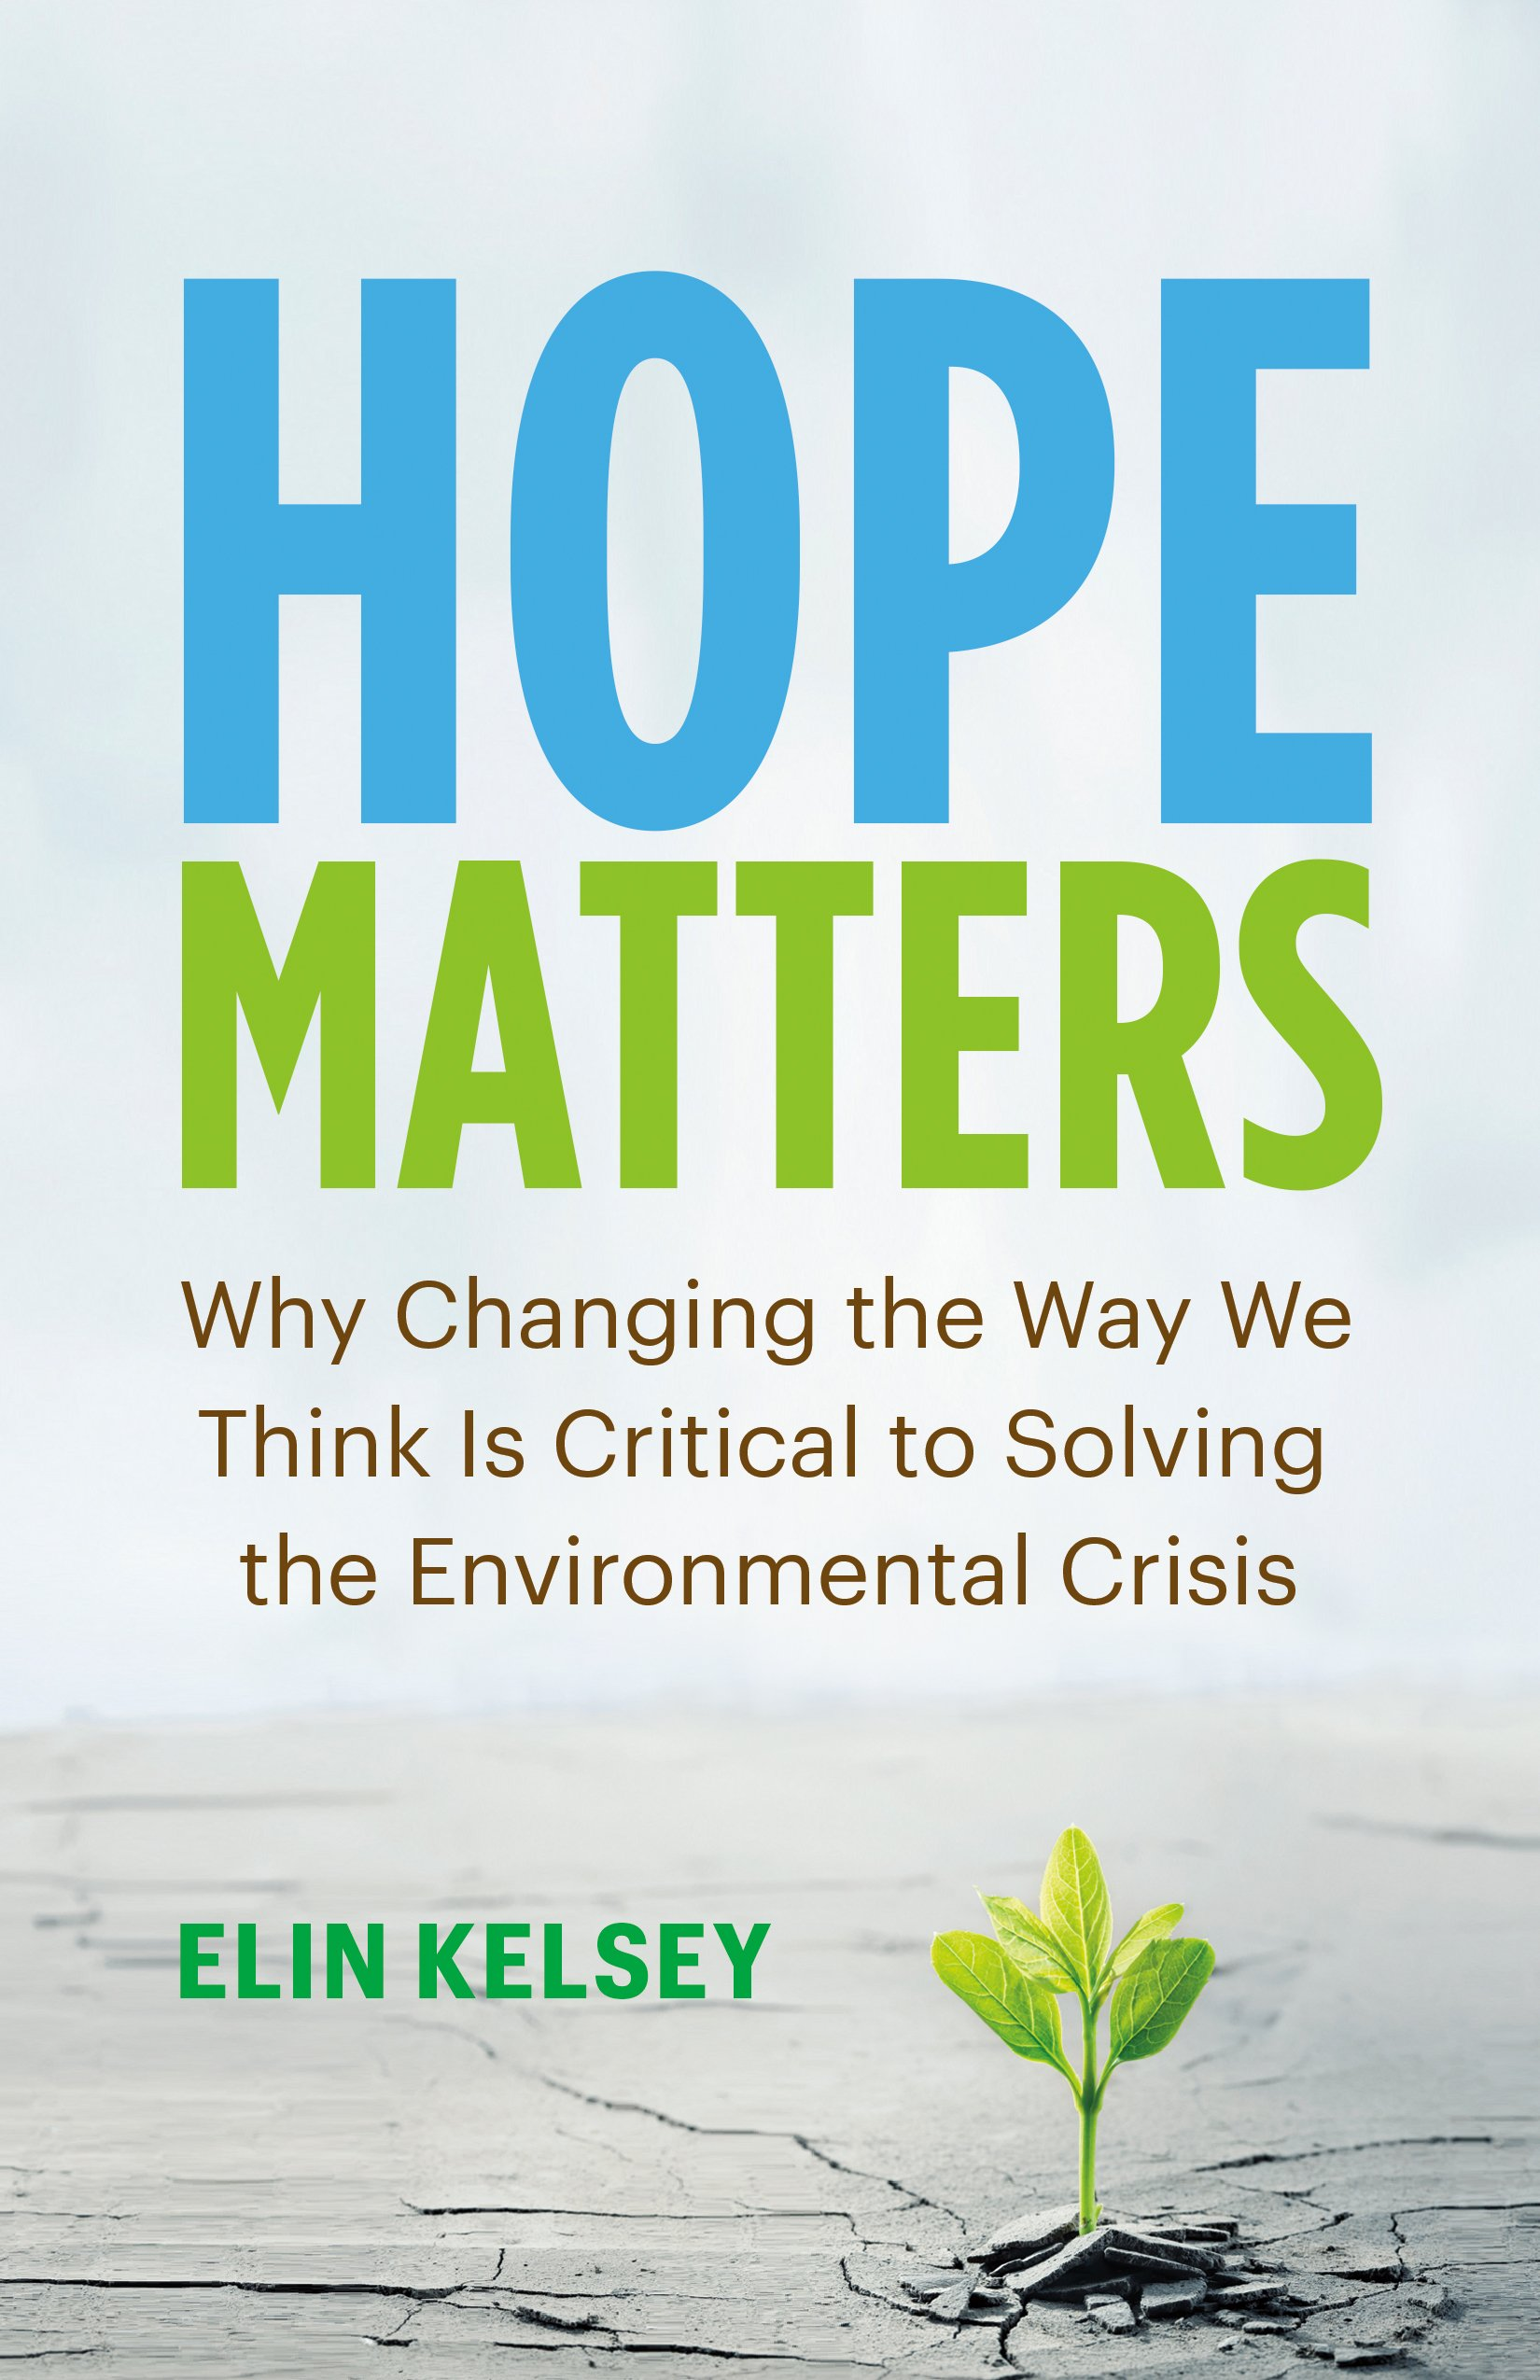 [PDF] [EPUB] Hope Matters: Why Changing the Way We Think Is Critical to Solving the Environmental Crisis Download by Elin Kelsey